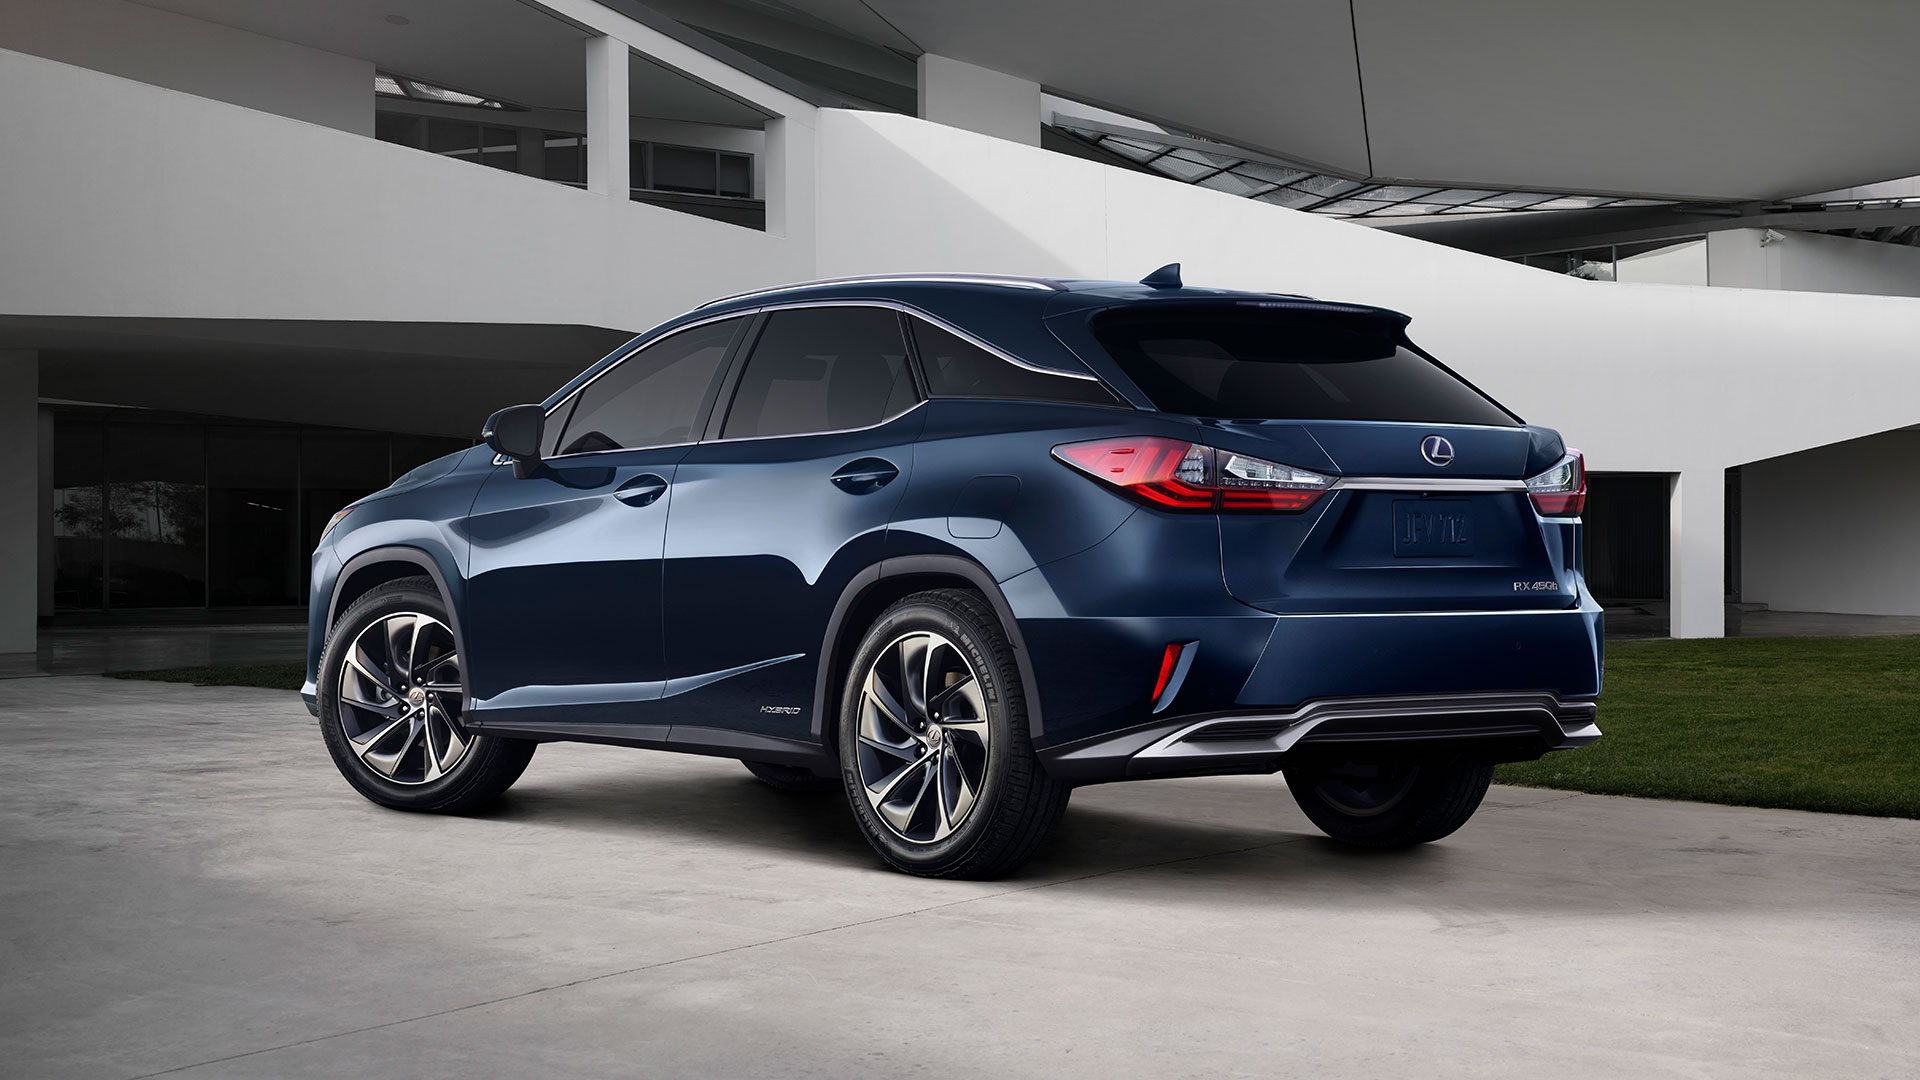 lexus rx luxury hybrid crossover explore rx 450h range. Black Bedroom Furniture Sets. Home Design Ideas